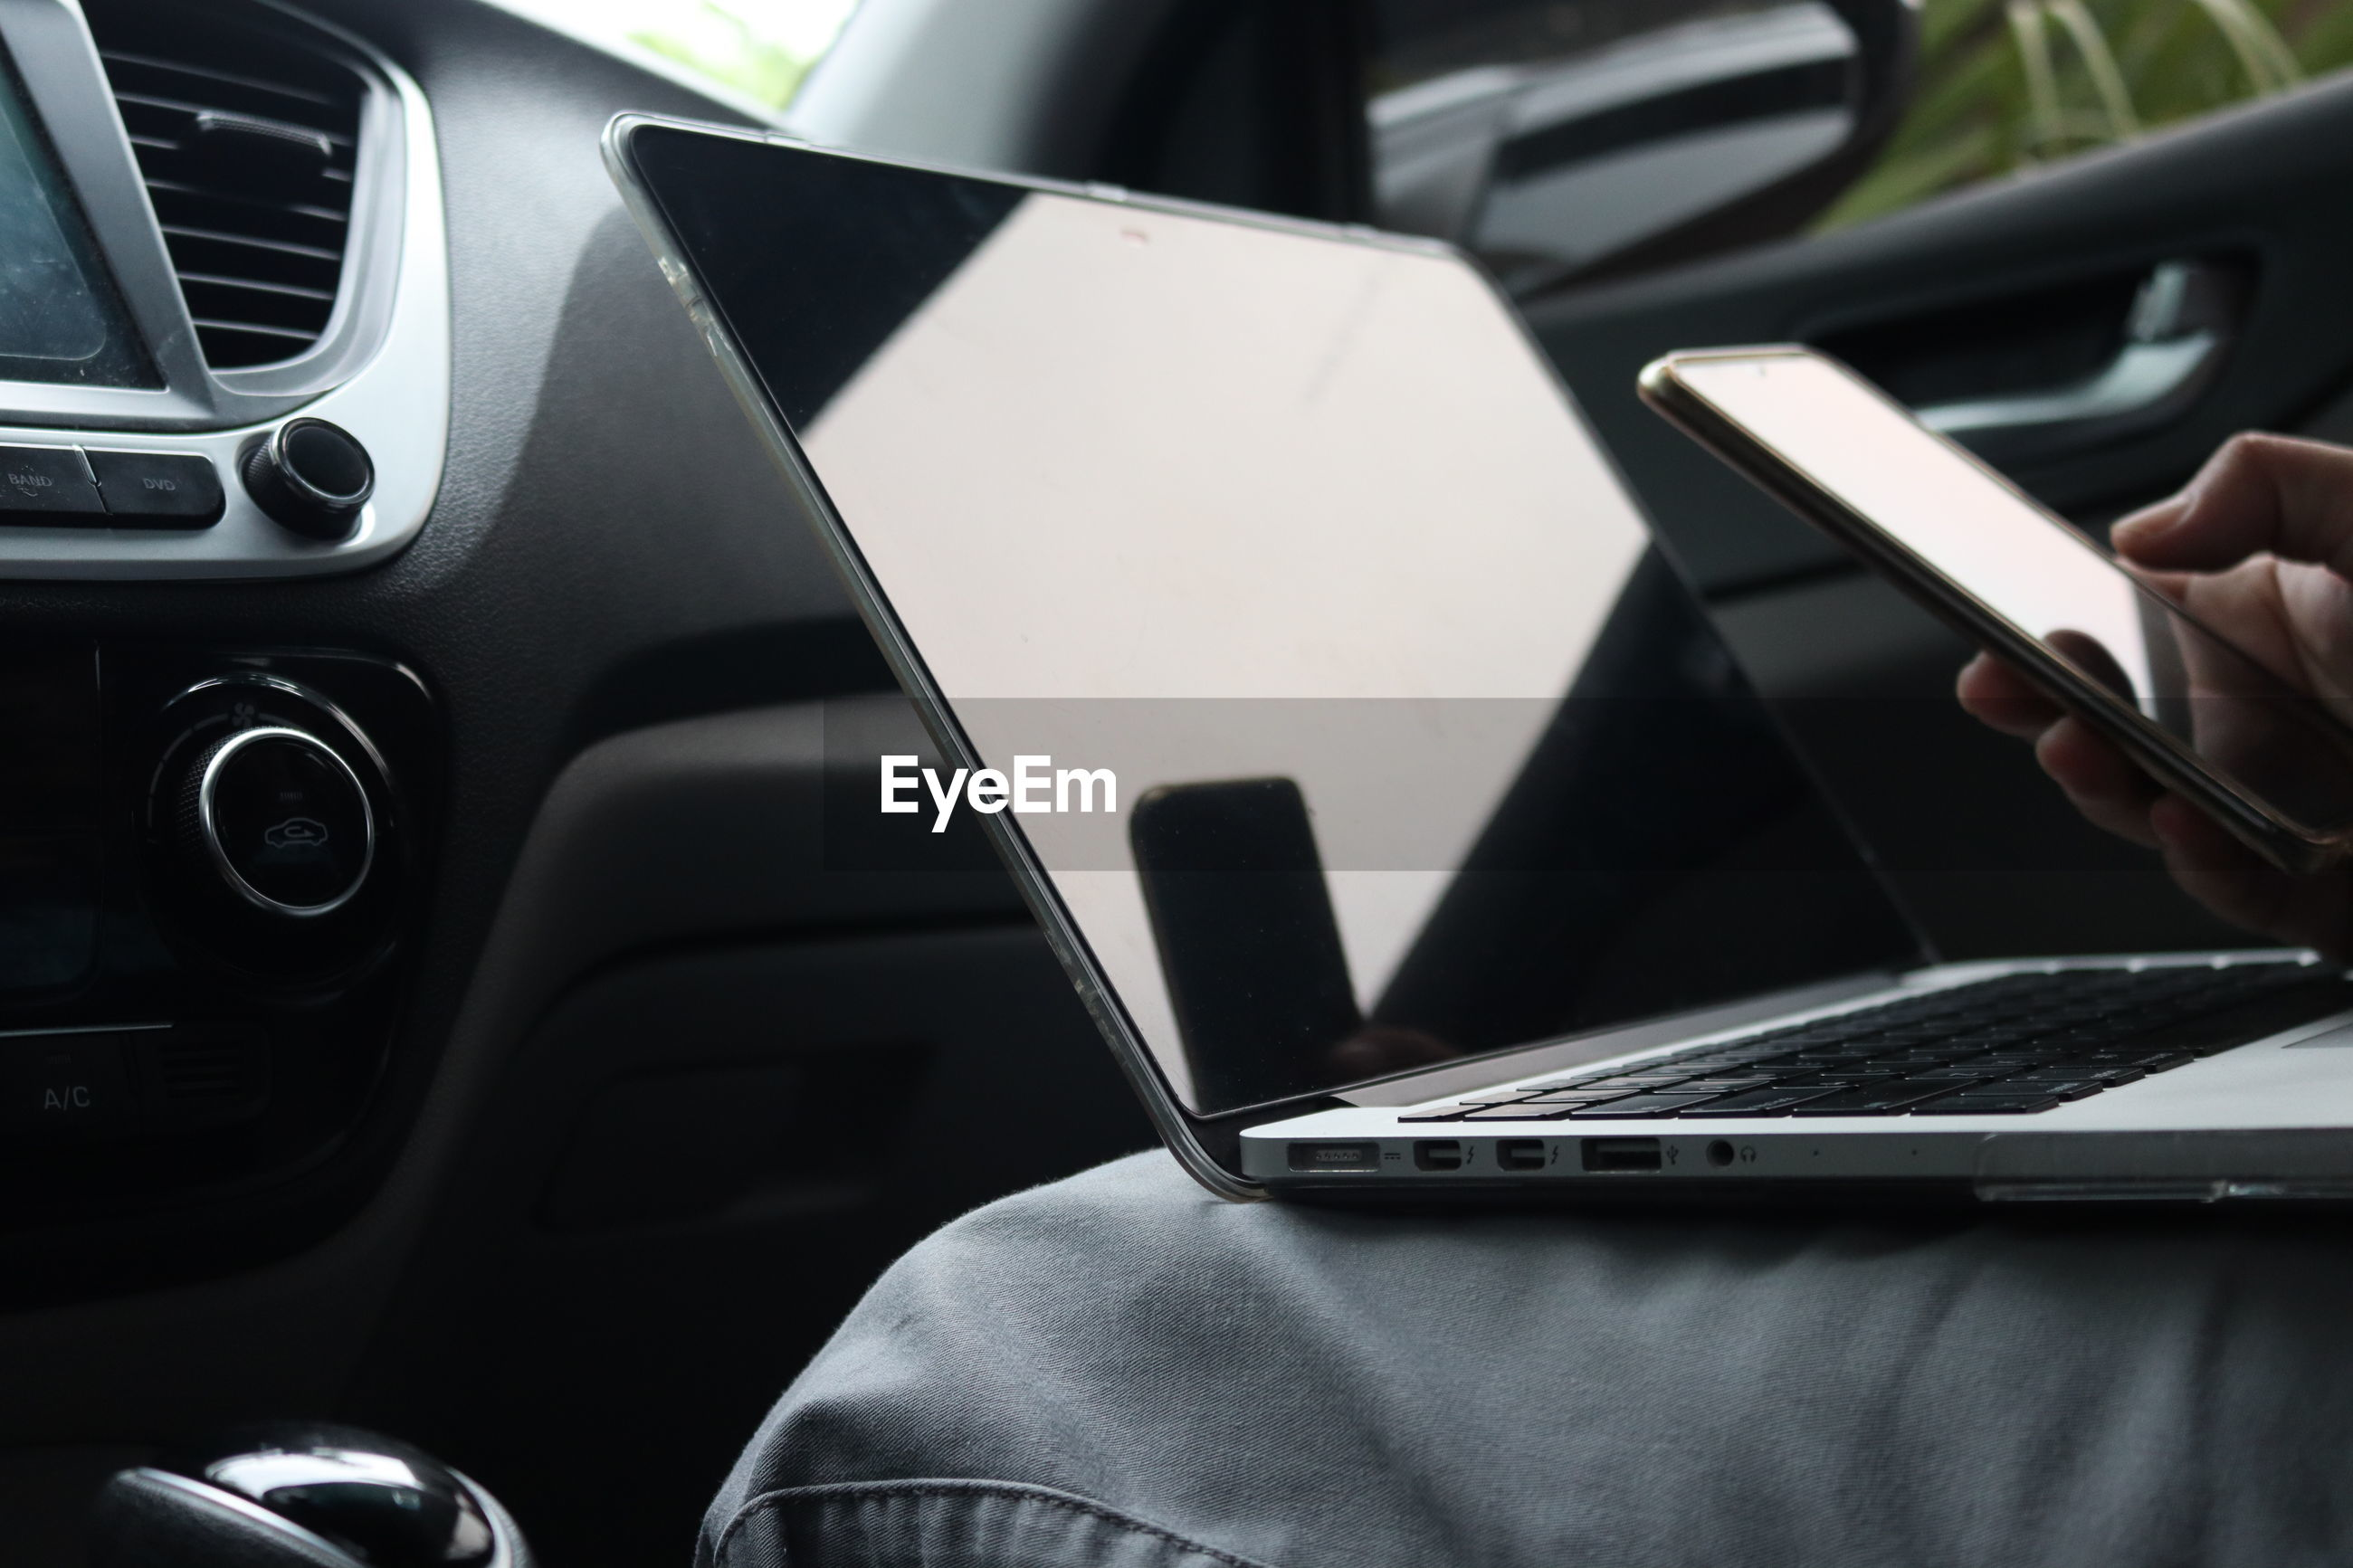 Cropped image of man using technologies while traveling in car